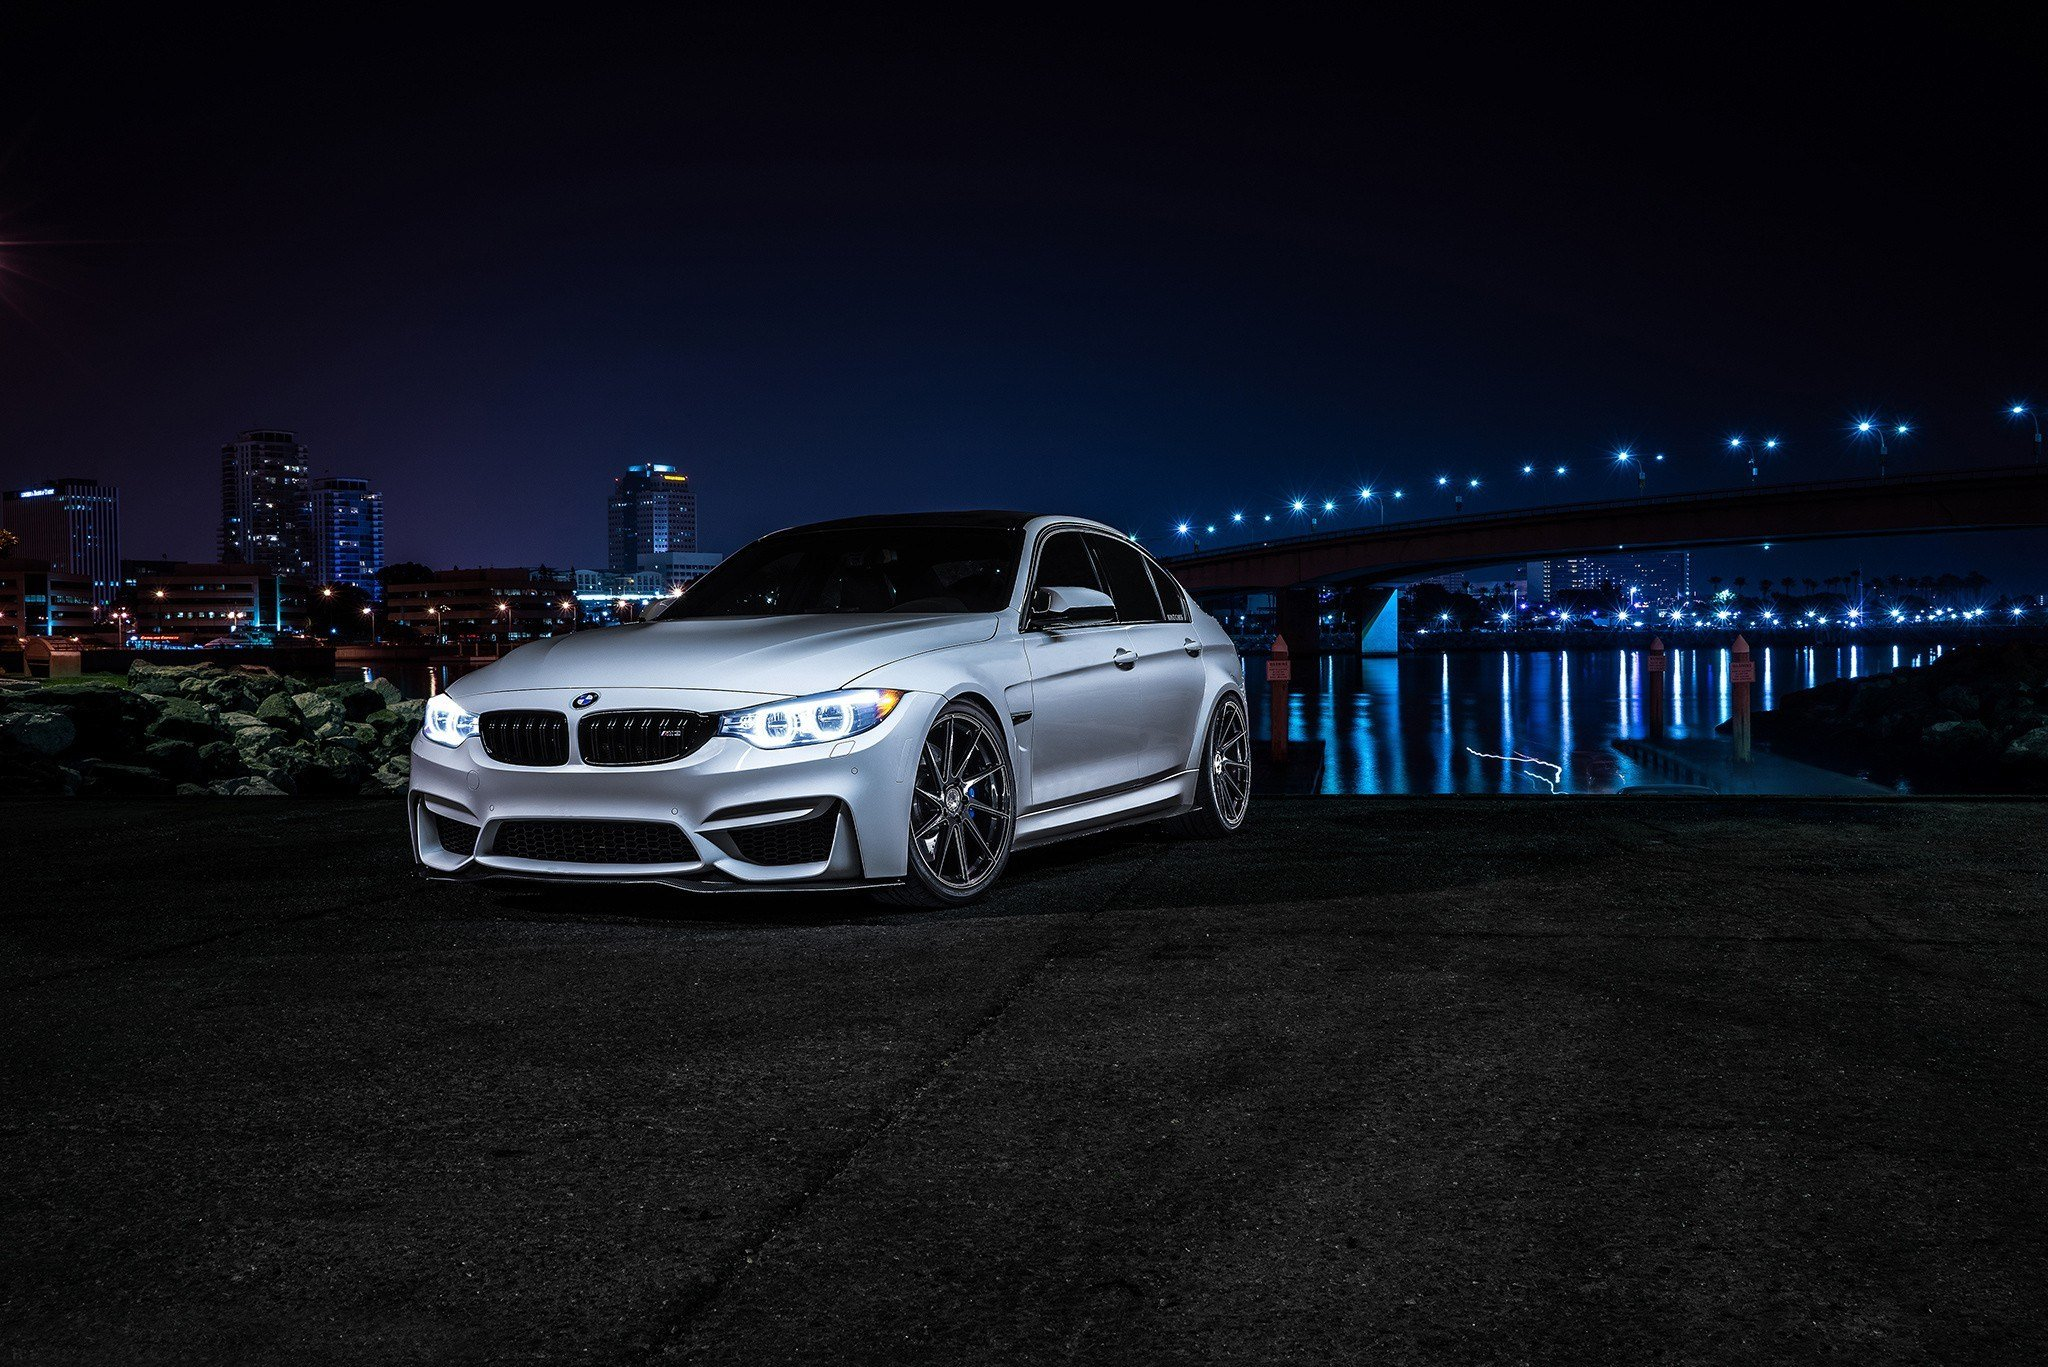 New Bmw Car Night Wallpapers Hd Desktop And Mobile Backgrounds On This Month